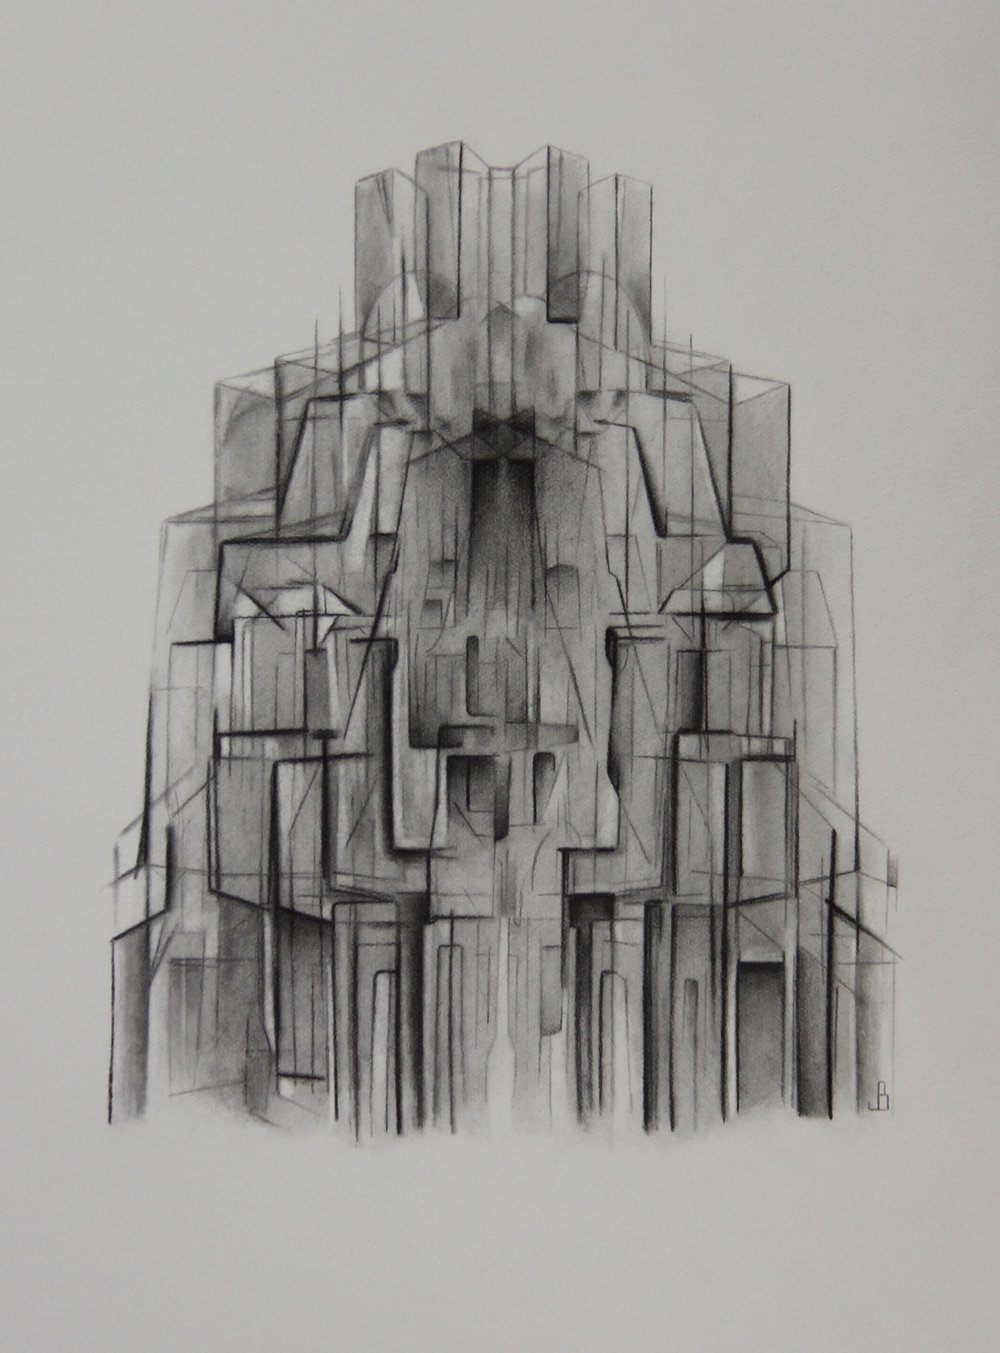 Jeremy Burns   Reassembling, 2016. Pencil on cartridge paper. 26 x 36 cm. £350.00 (framed)